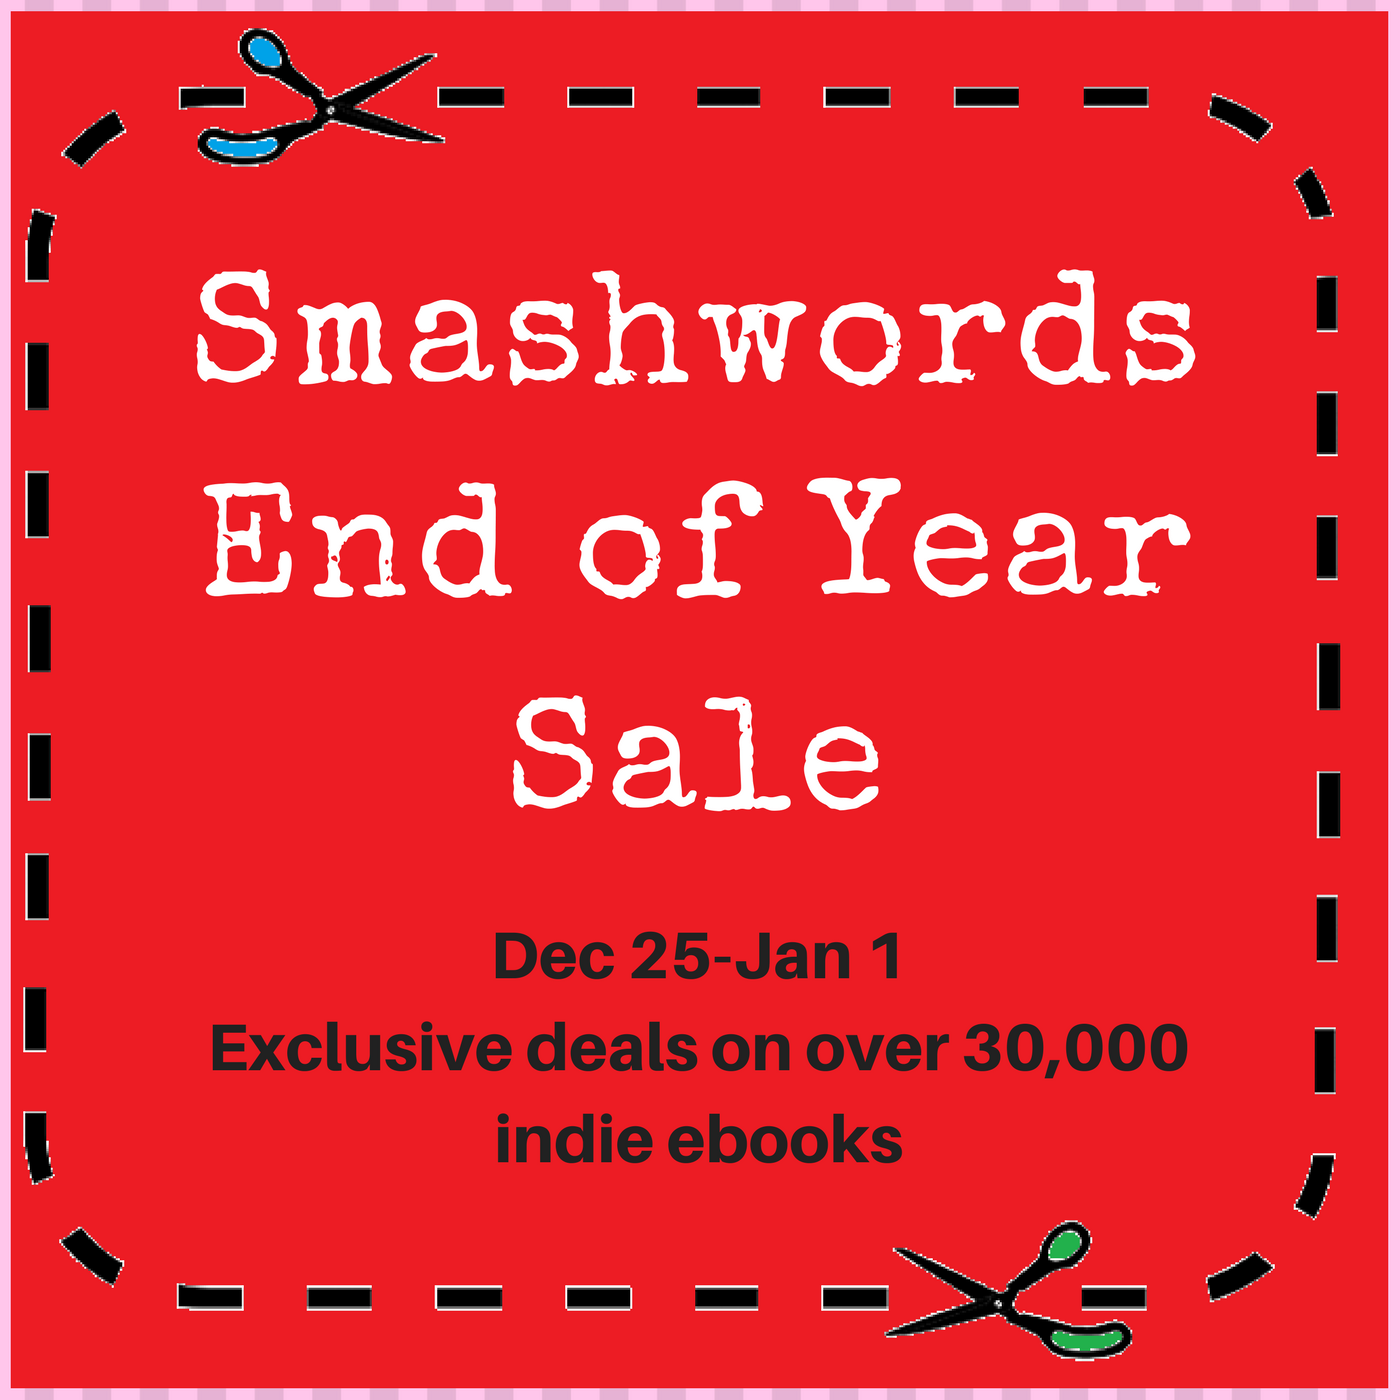 Smashwordsendofyearsaleg smashwords end of year sale starts december 25 fandeluxe Gallery